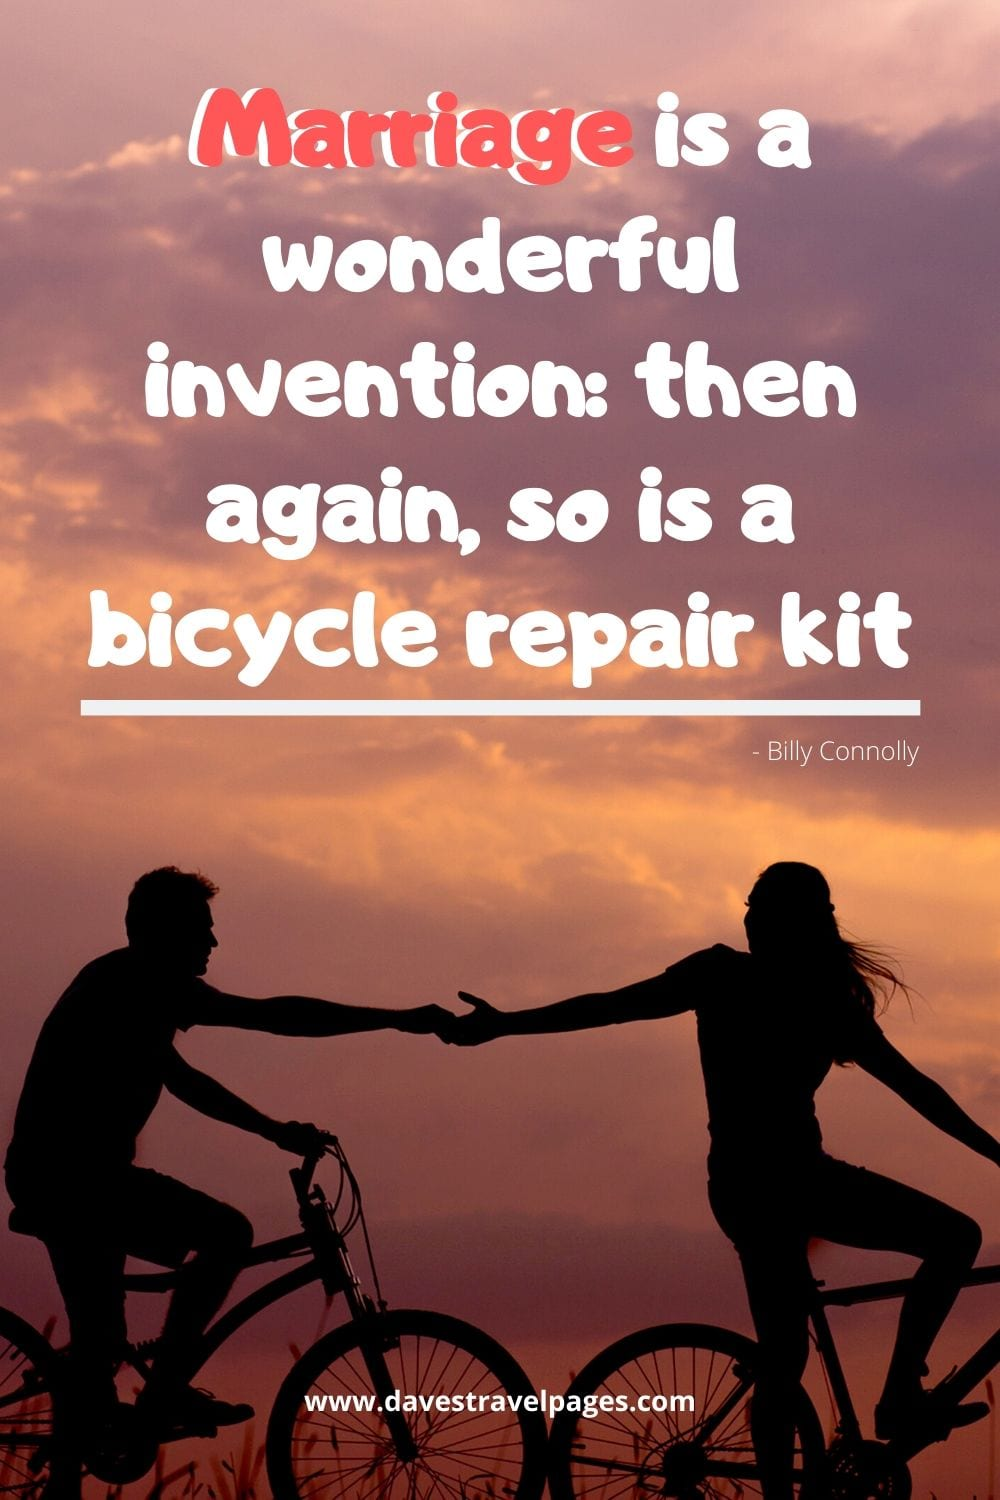 Marriage is a wonderful invention: then again, so is a bicycle repair kit. Billy Connolly